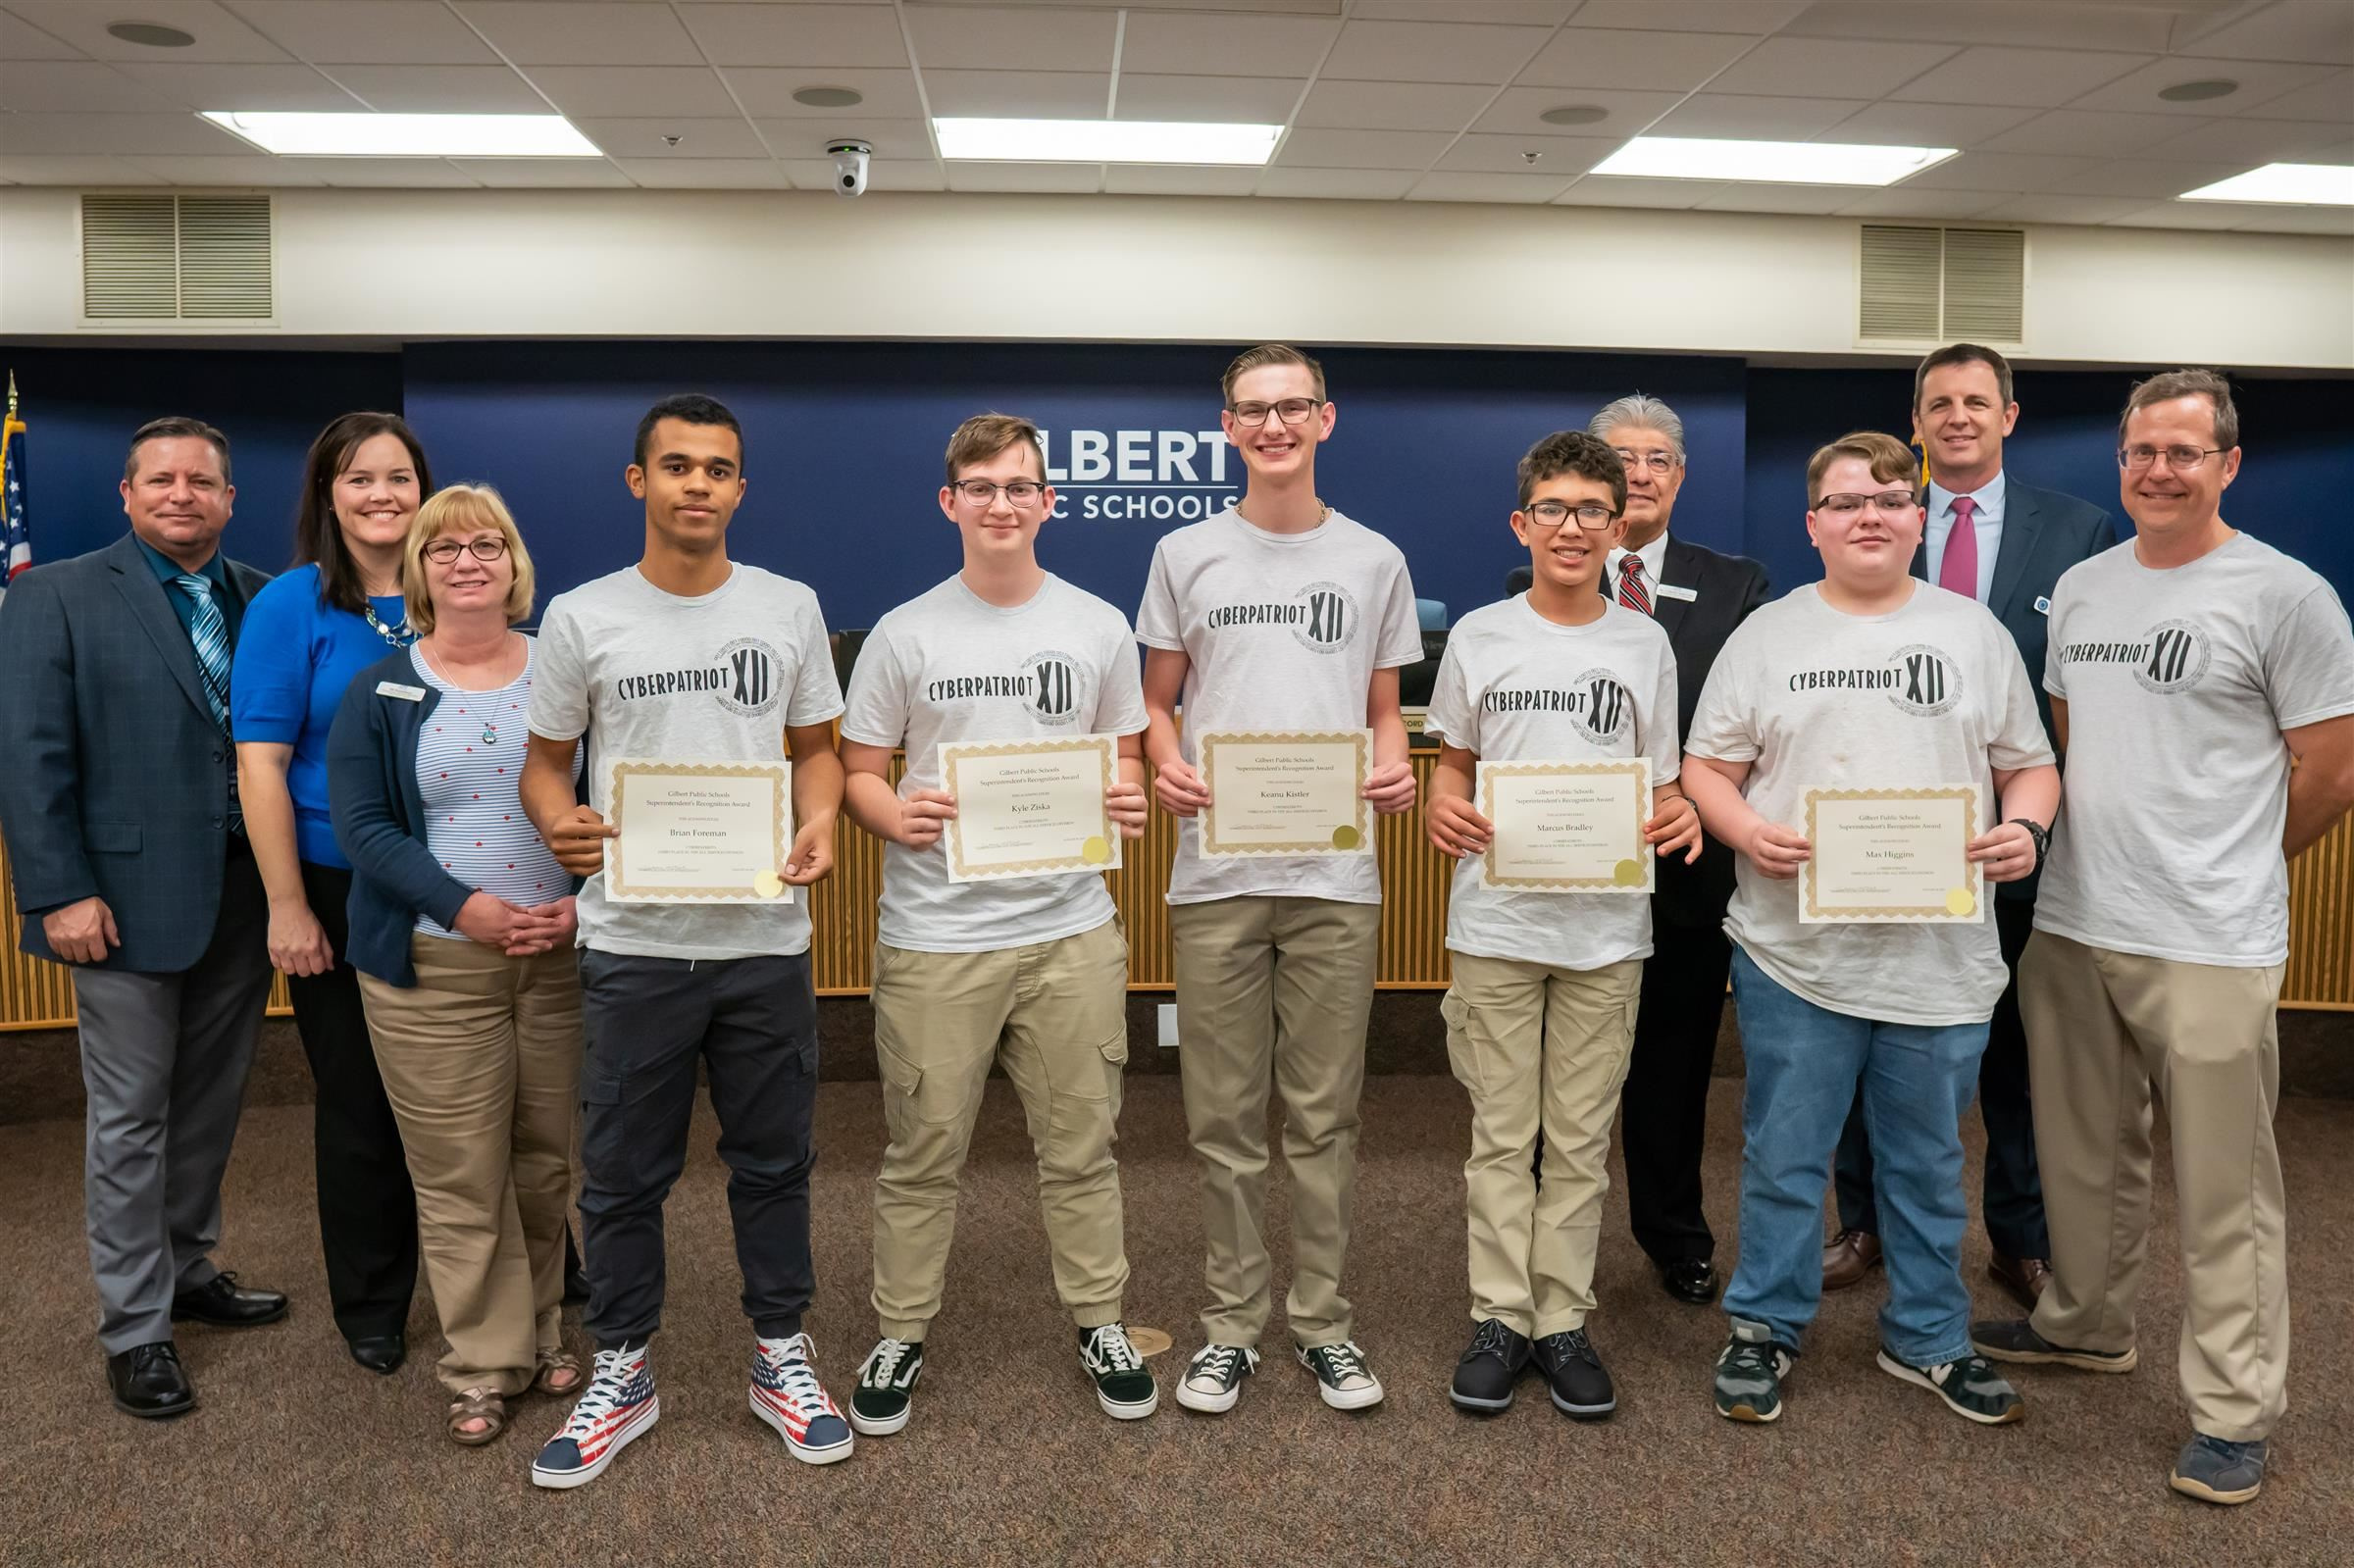 Desert Ridge High Cyberpatriots team members were recognized for placing third in State competition.